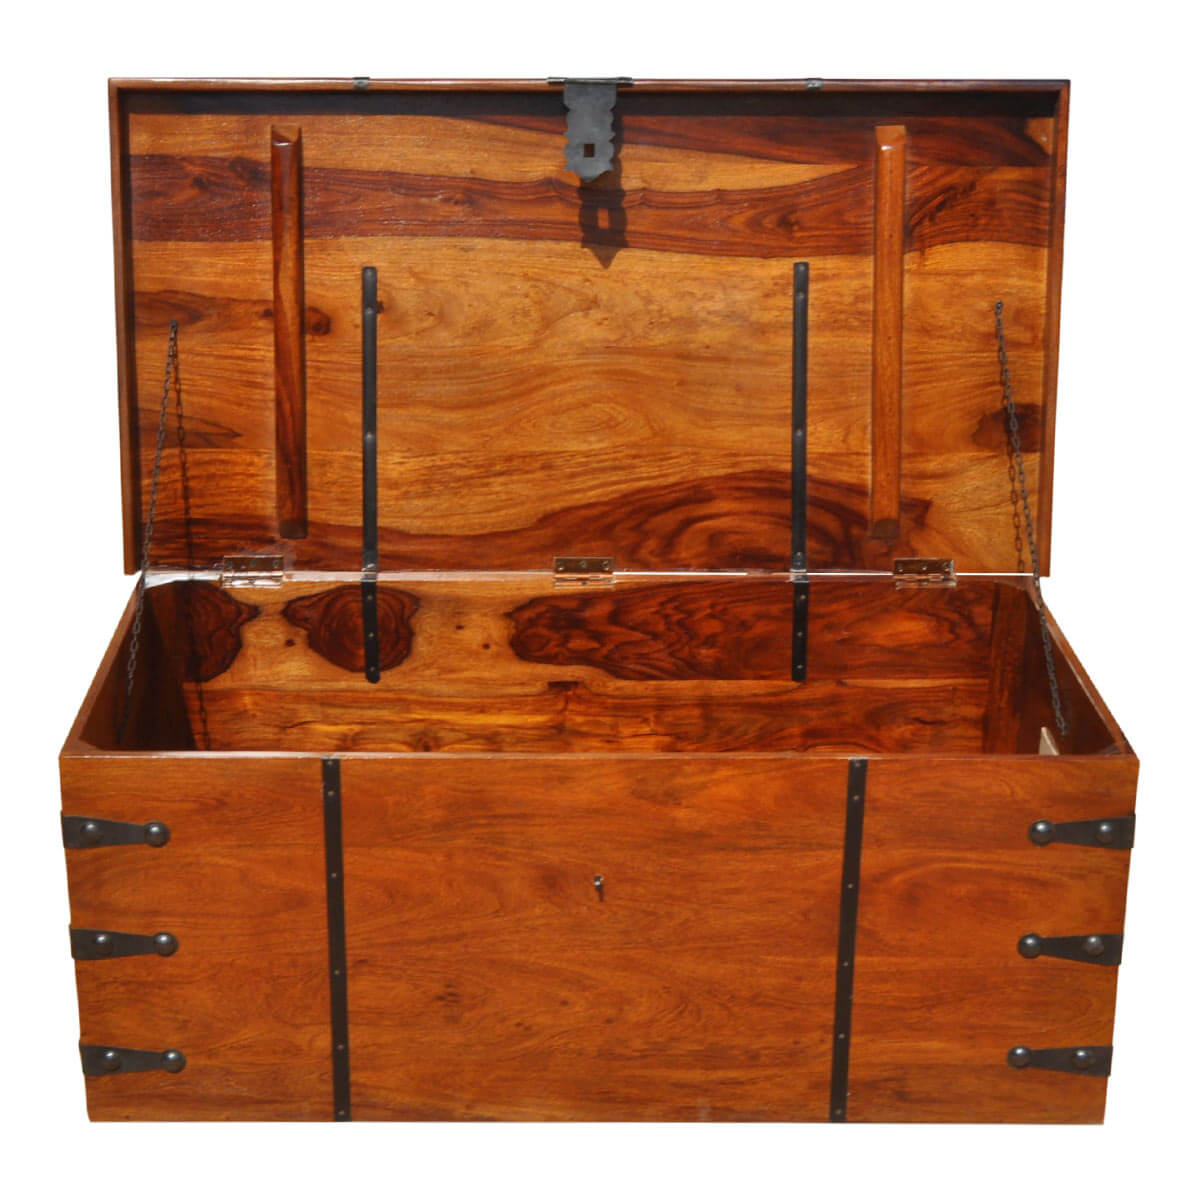 Large solid wood with metal accents storage trunk coffee